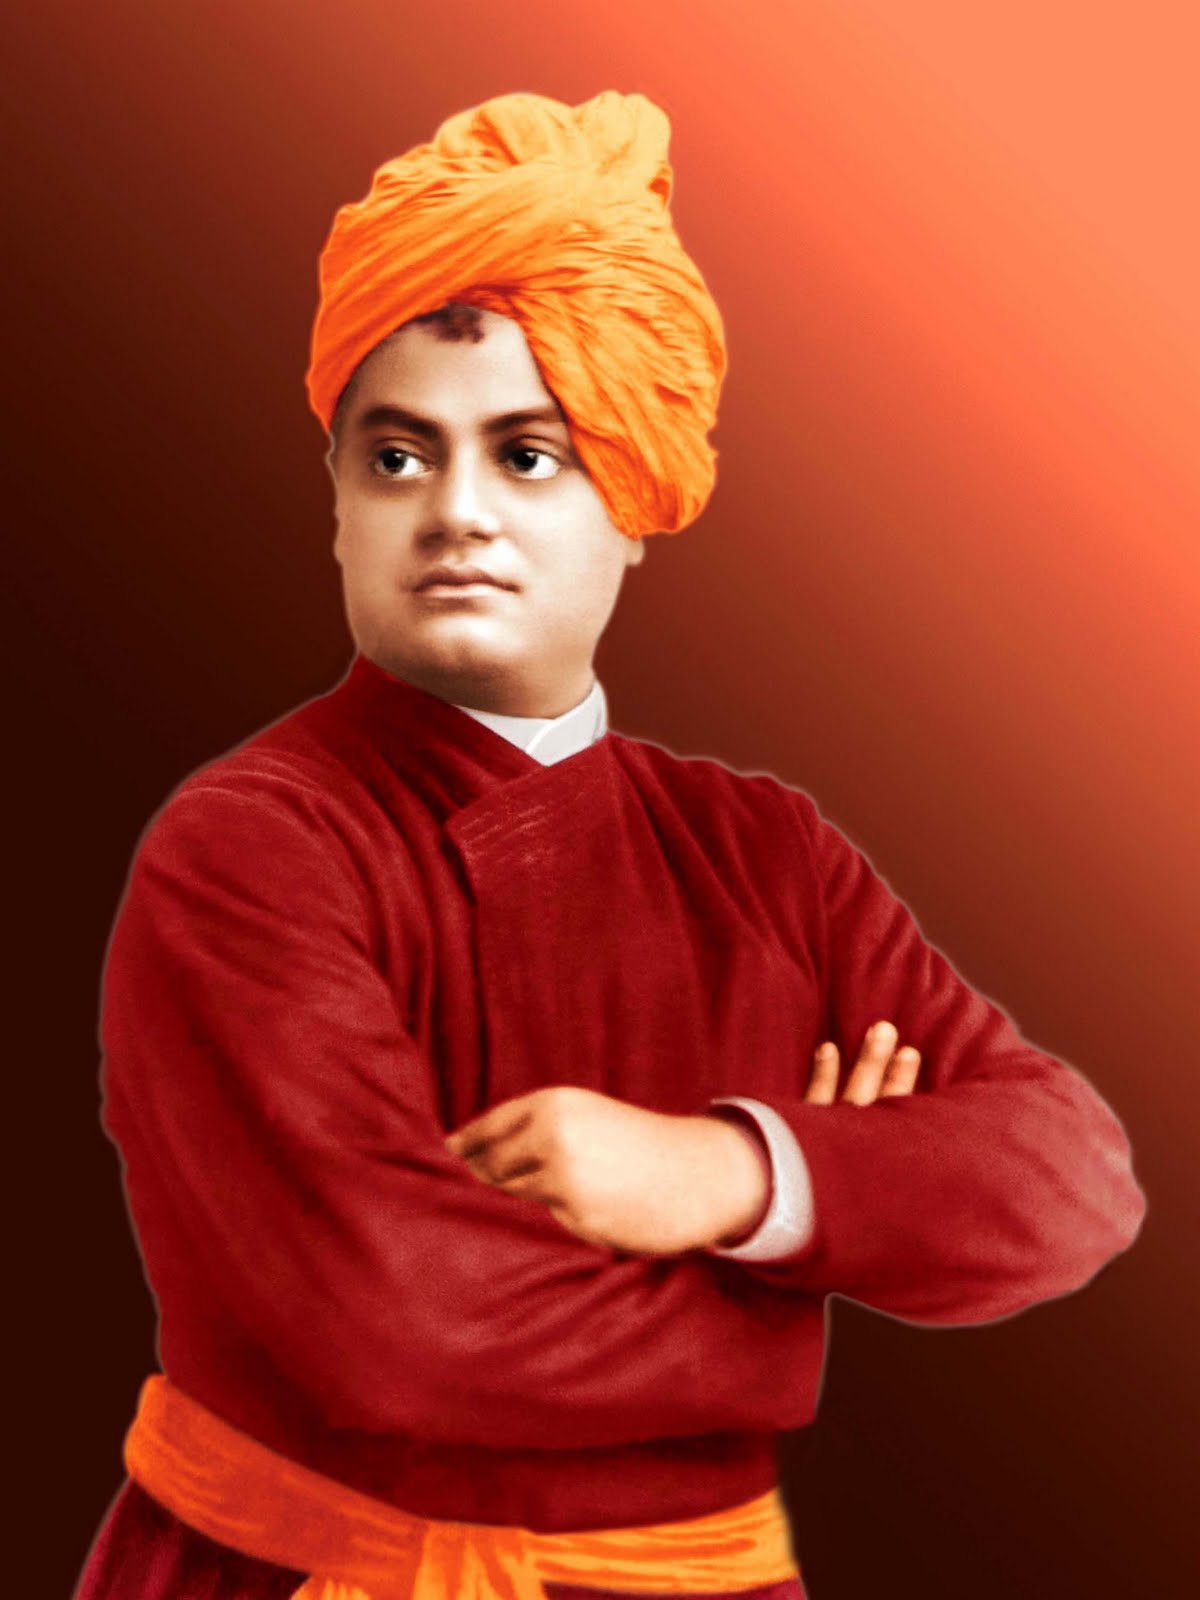 Biographic of Swamiji Vivekananda